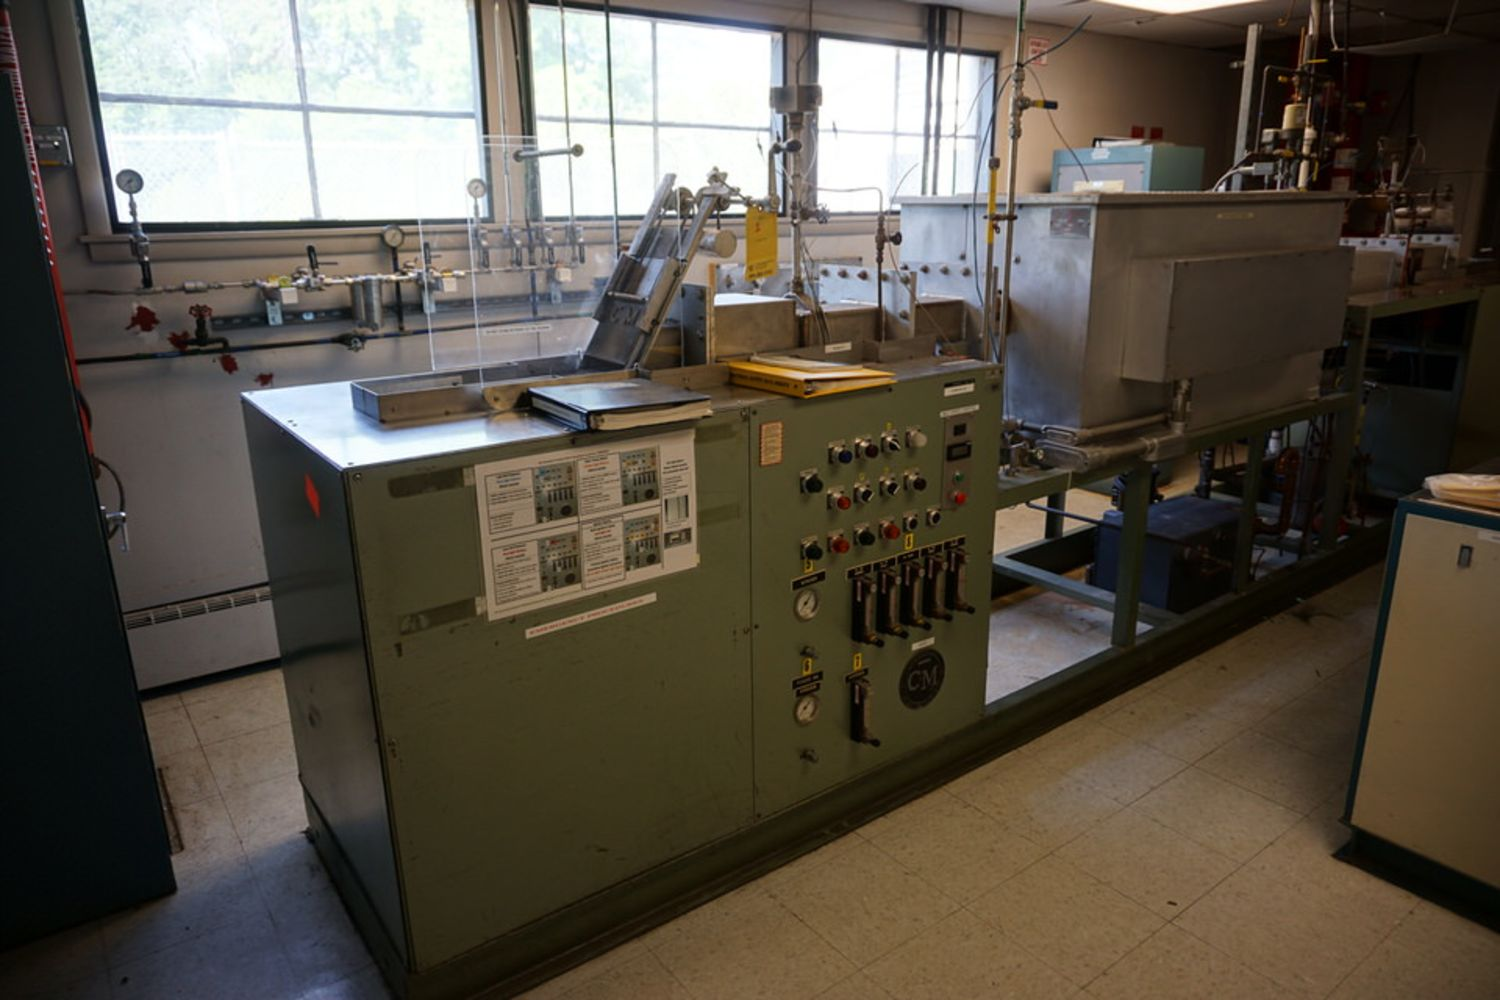 RESEARCH LAB FACILITY AUCTION